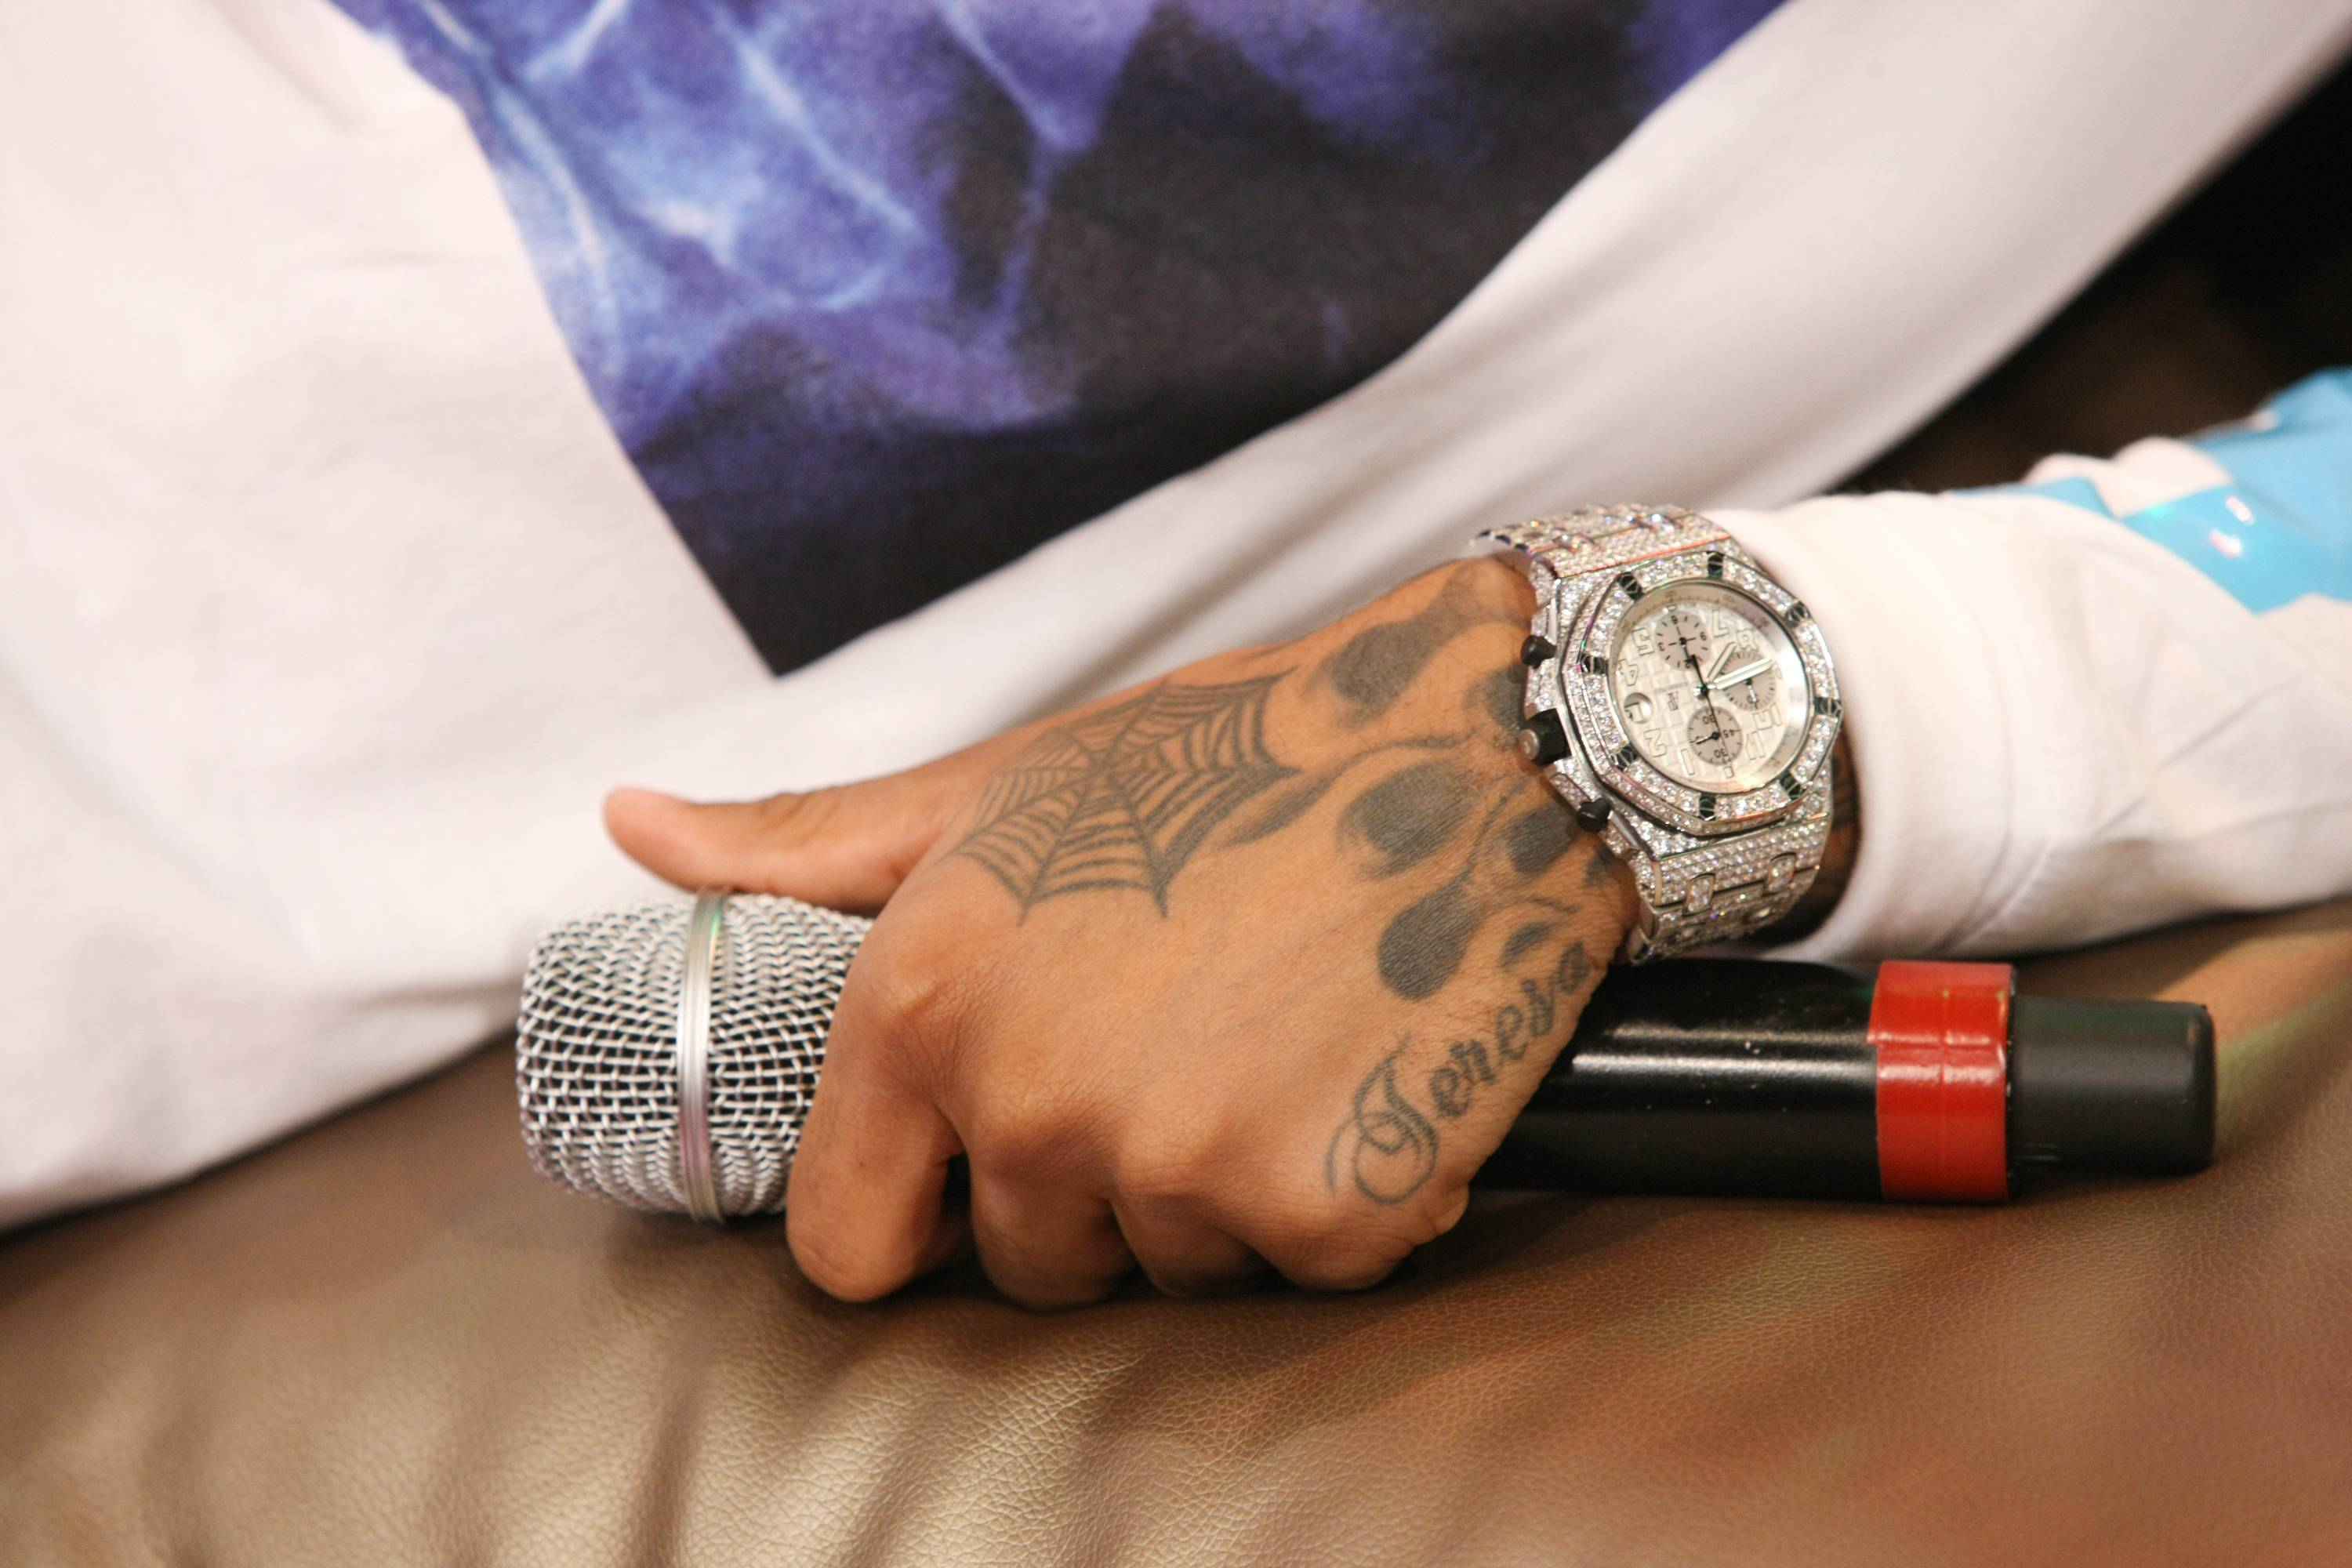 Tatted Up - (Photo: Bennett Raglin/BET/Getty Images for BET)